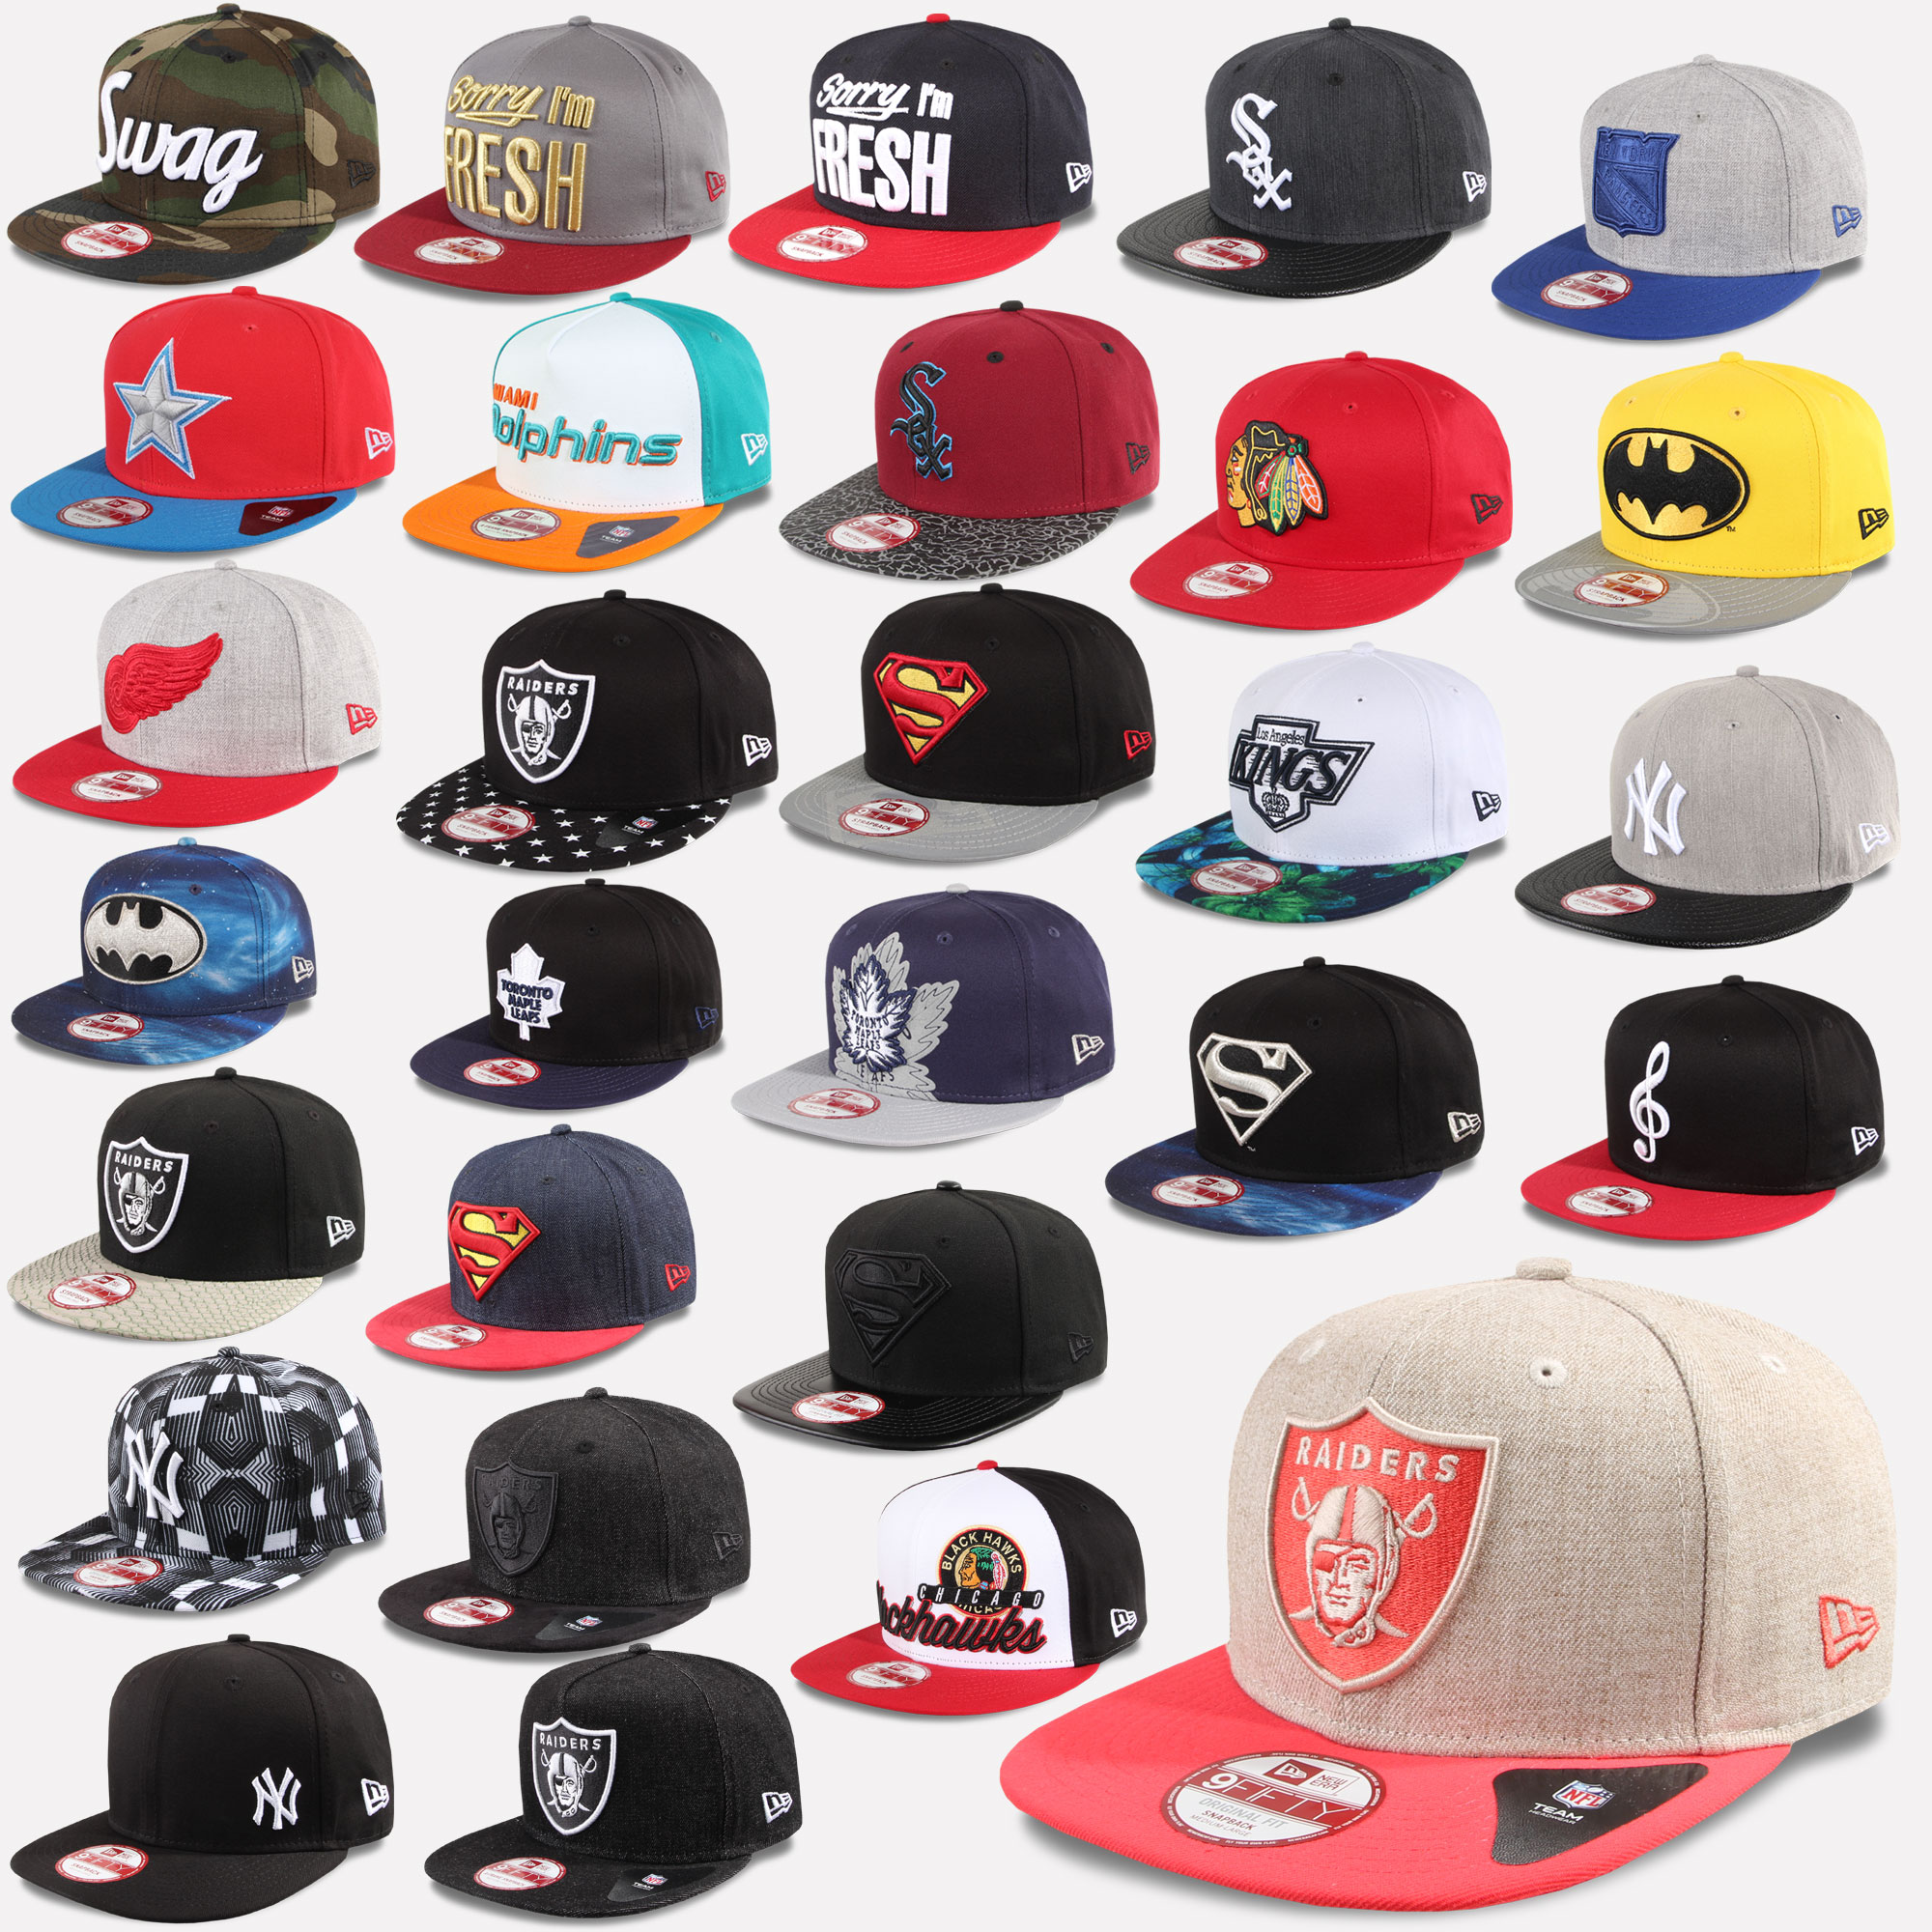 New Era Cappello Snapback 9Fifty York Yankees Batman Superman Sox ... 010098bd7a63